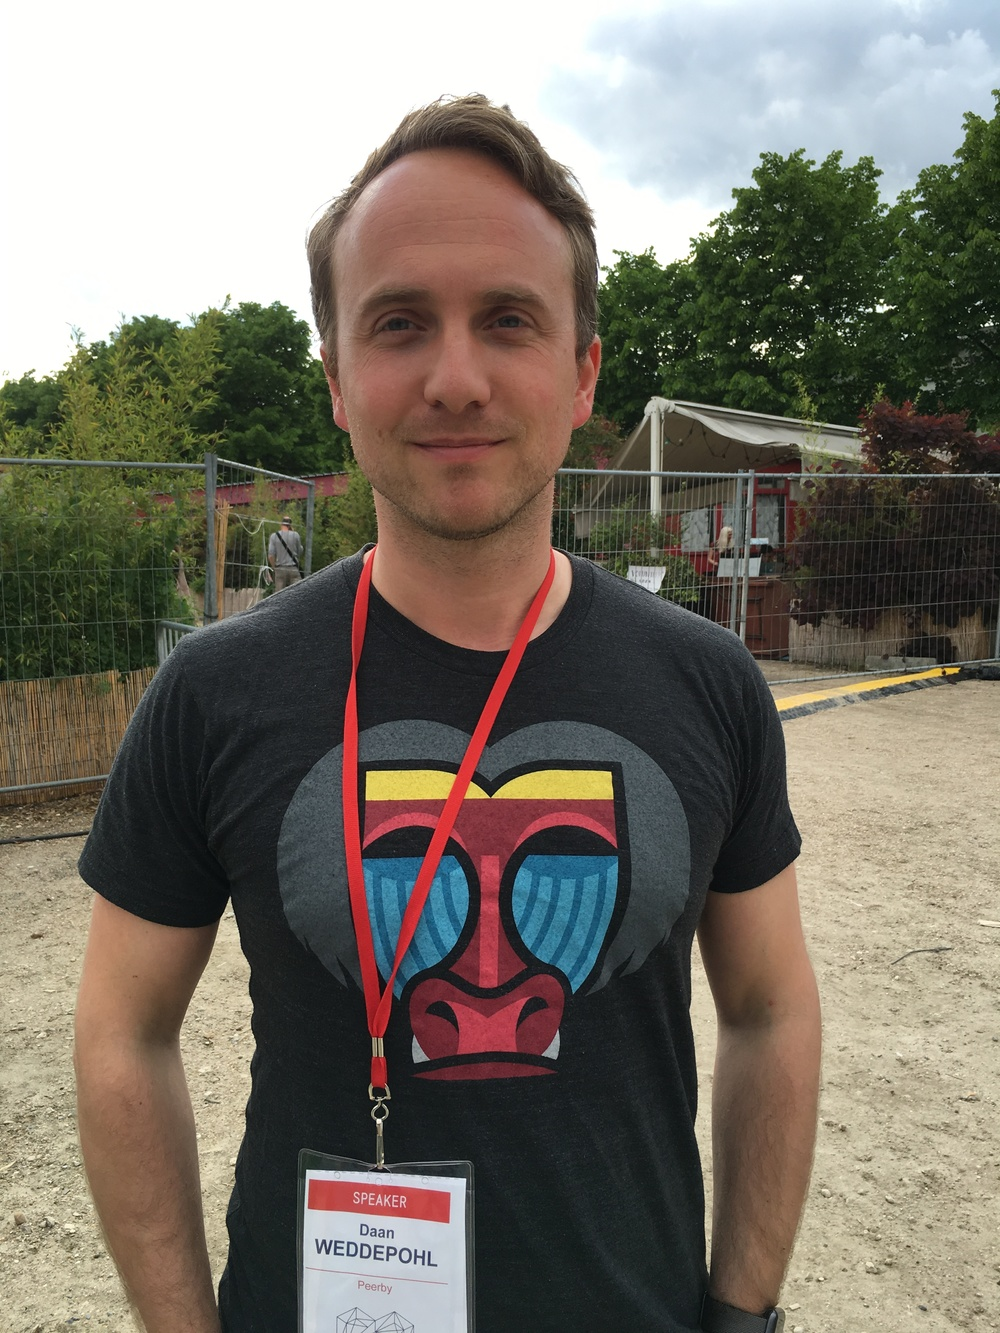 Daan Weddepohl, founder of Peerby